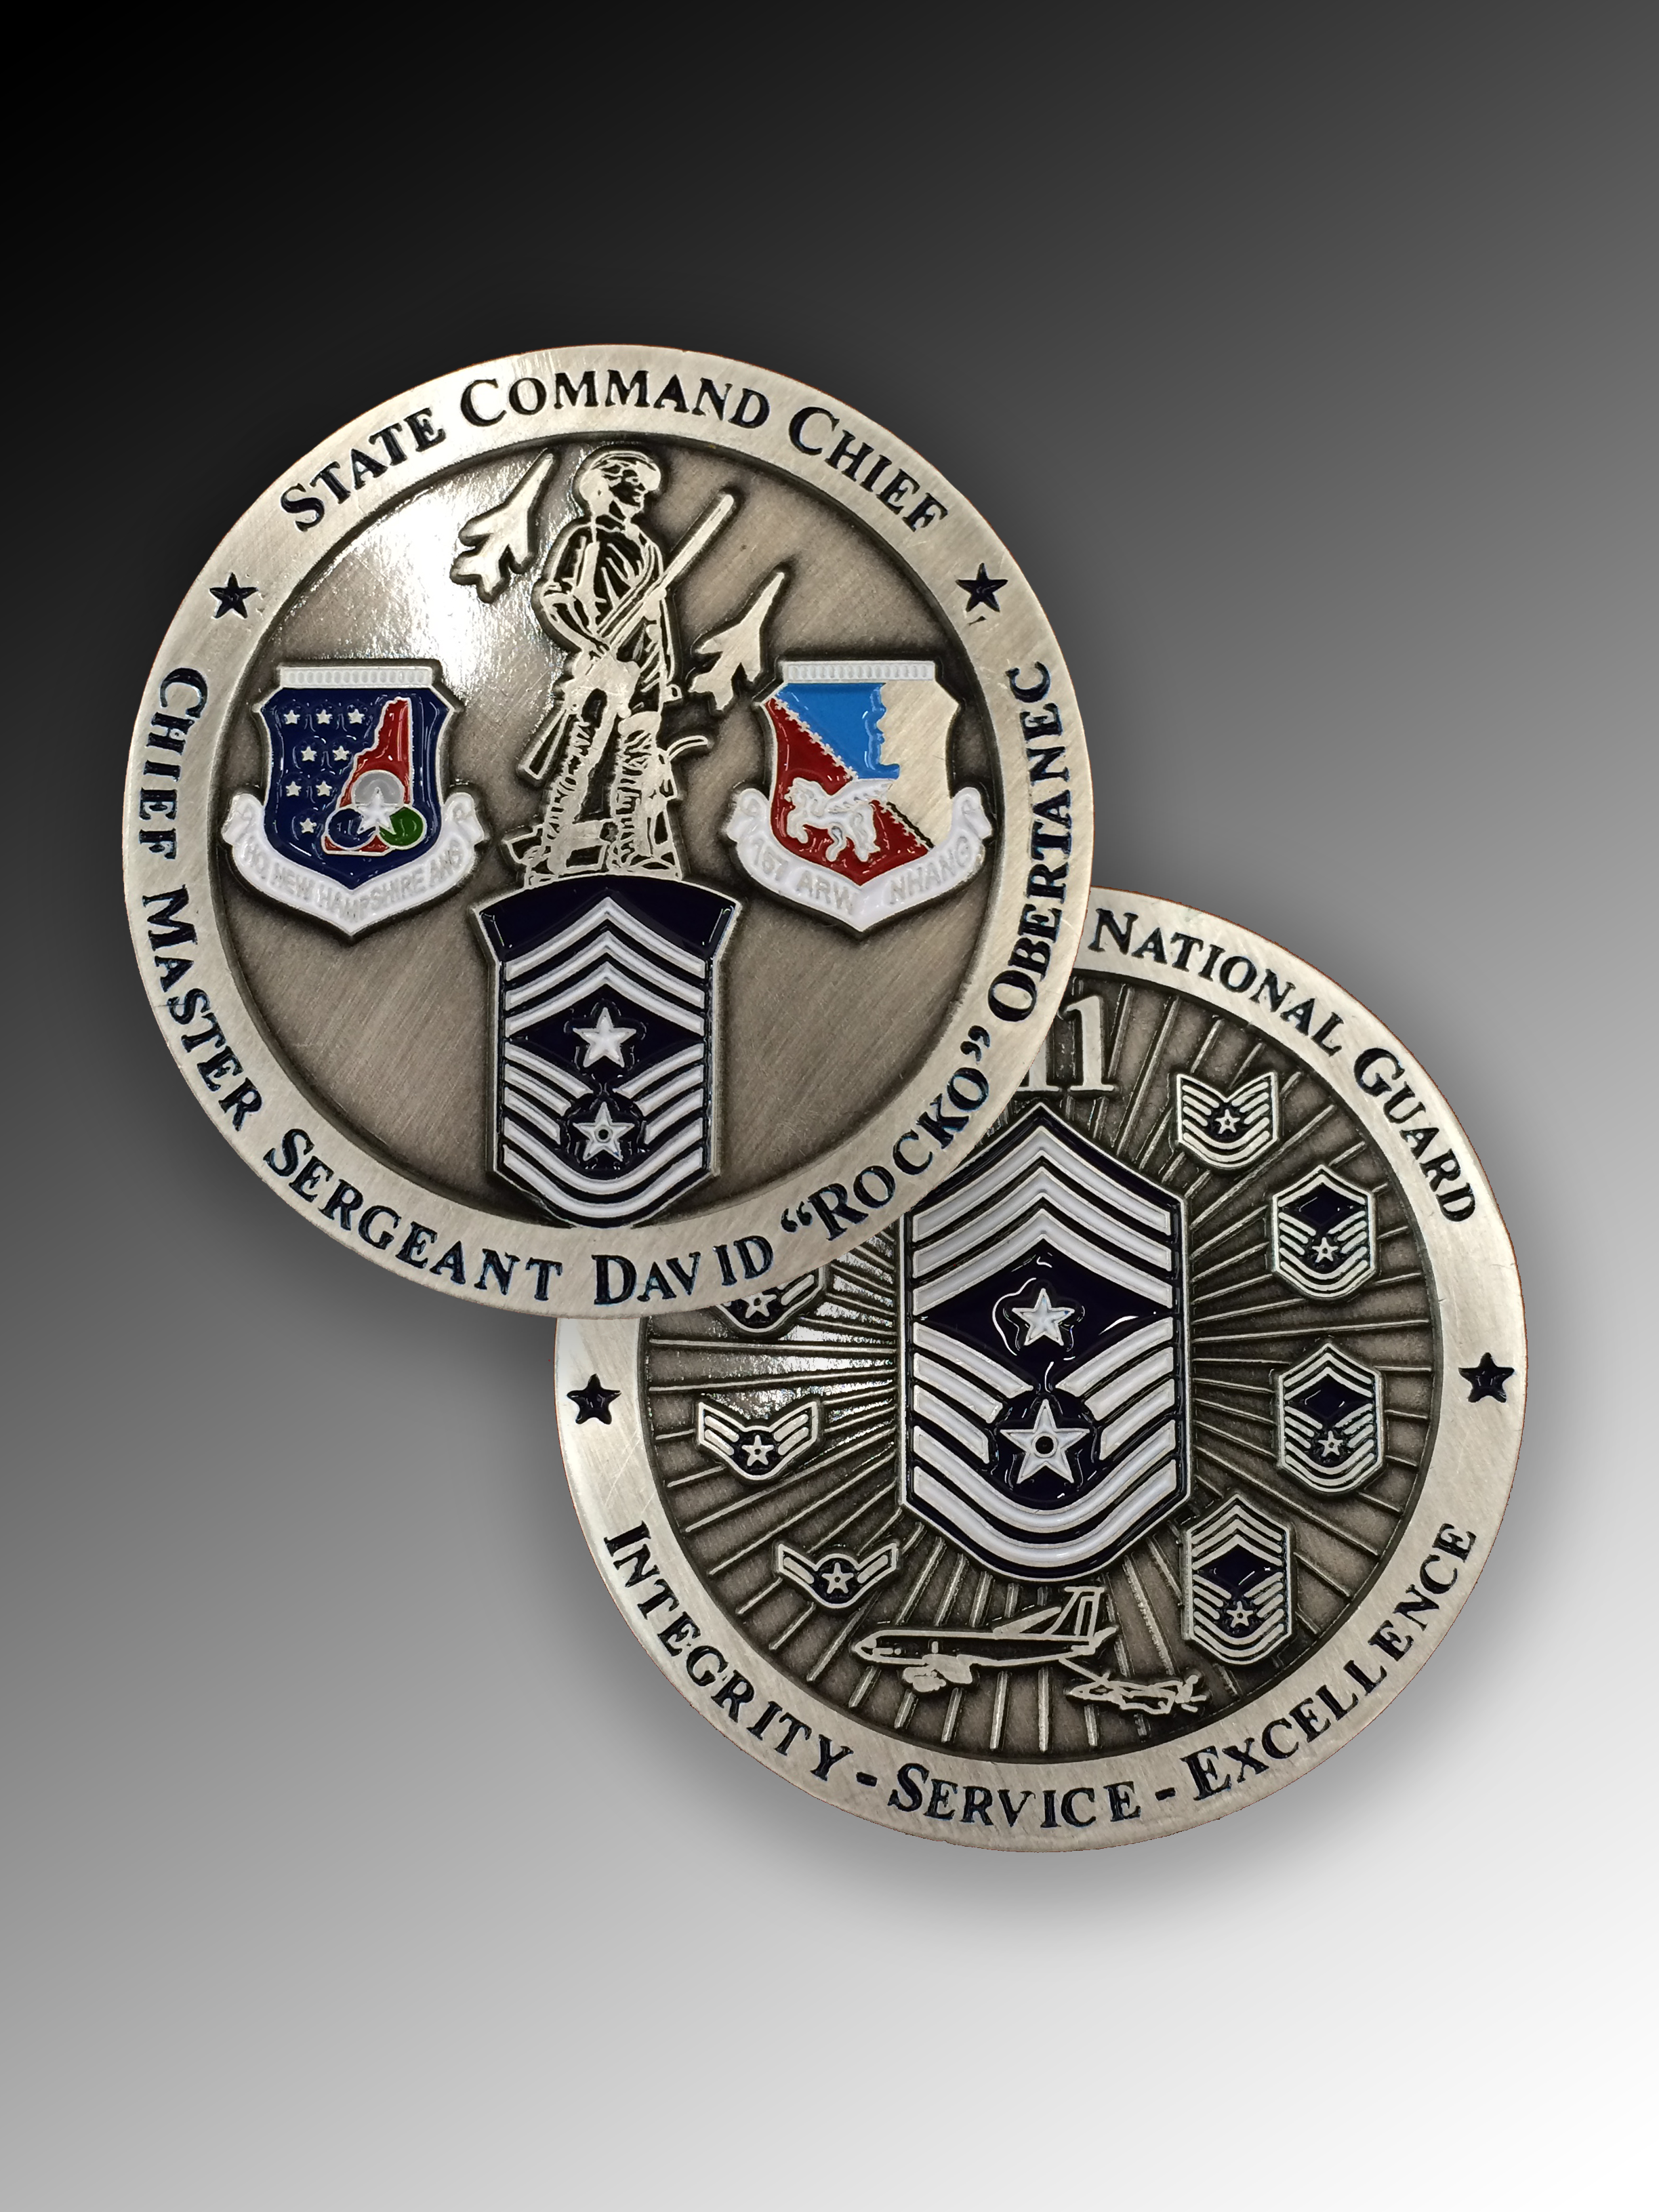 ang state command chief obertanec coin